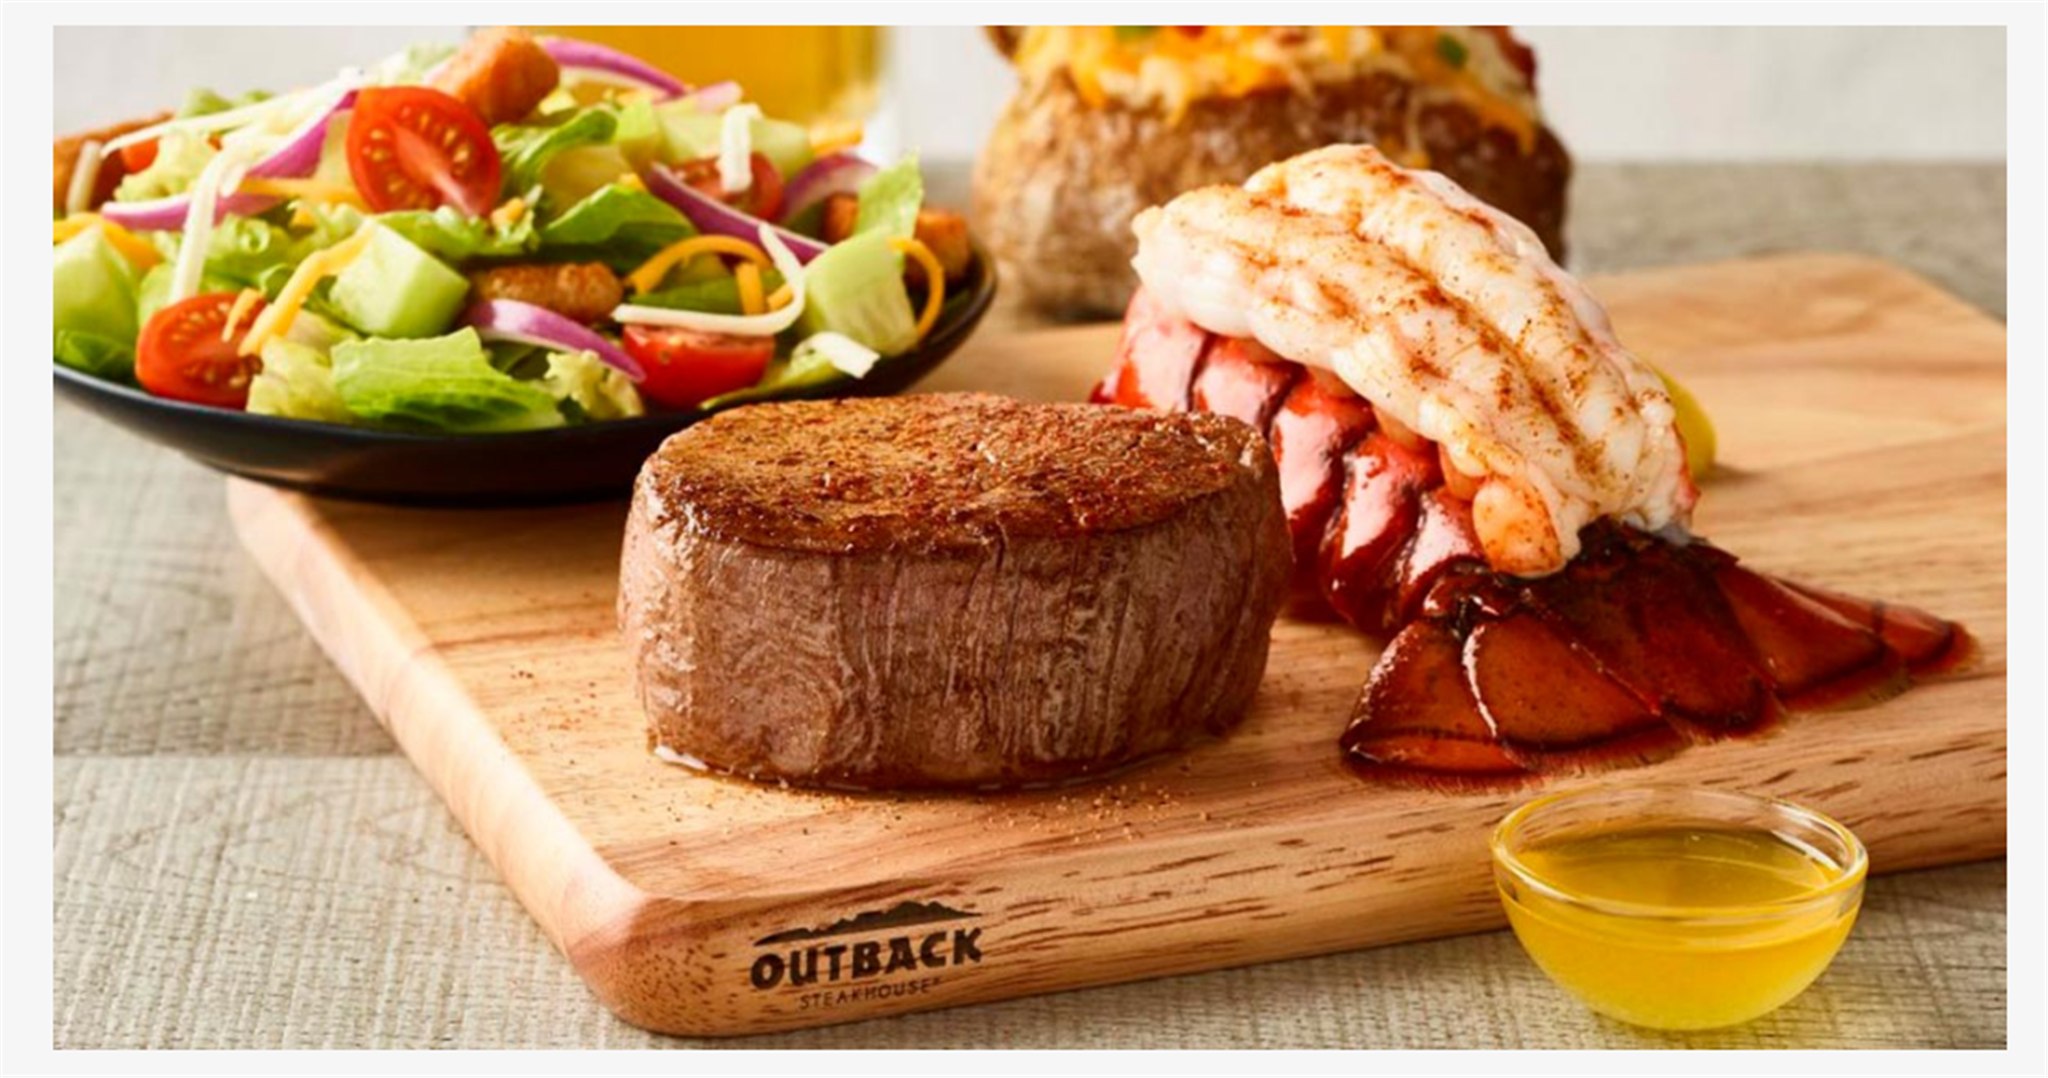 Outback Steakhouse – FREE $20 eGift Card with the Purchase of $50 or More in eGift Cards!